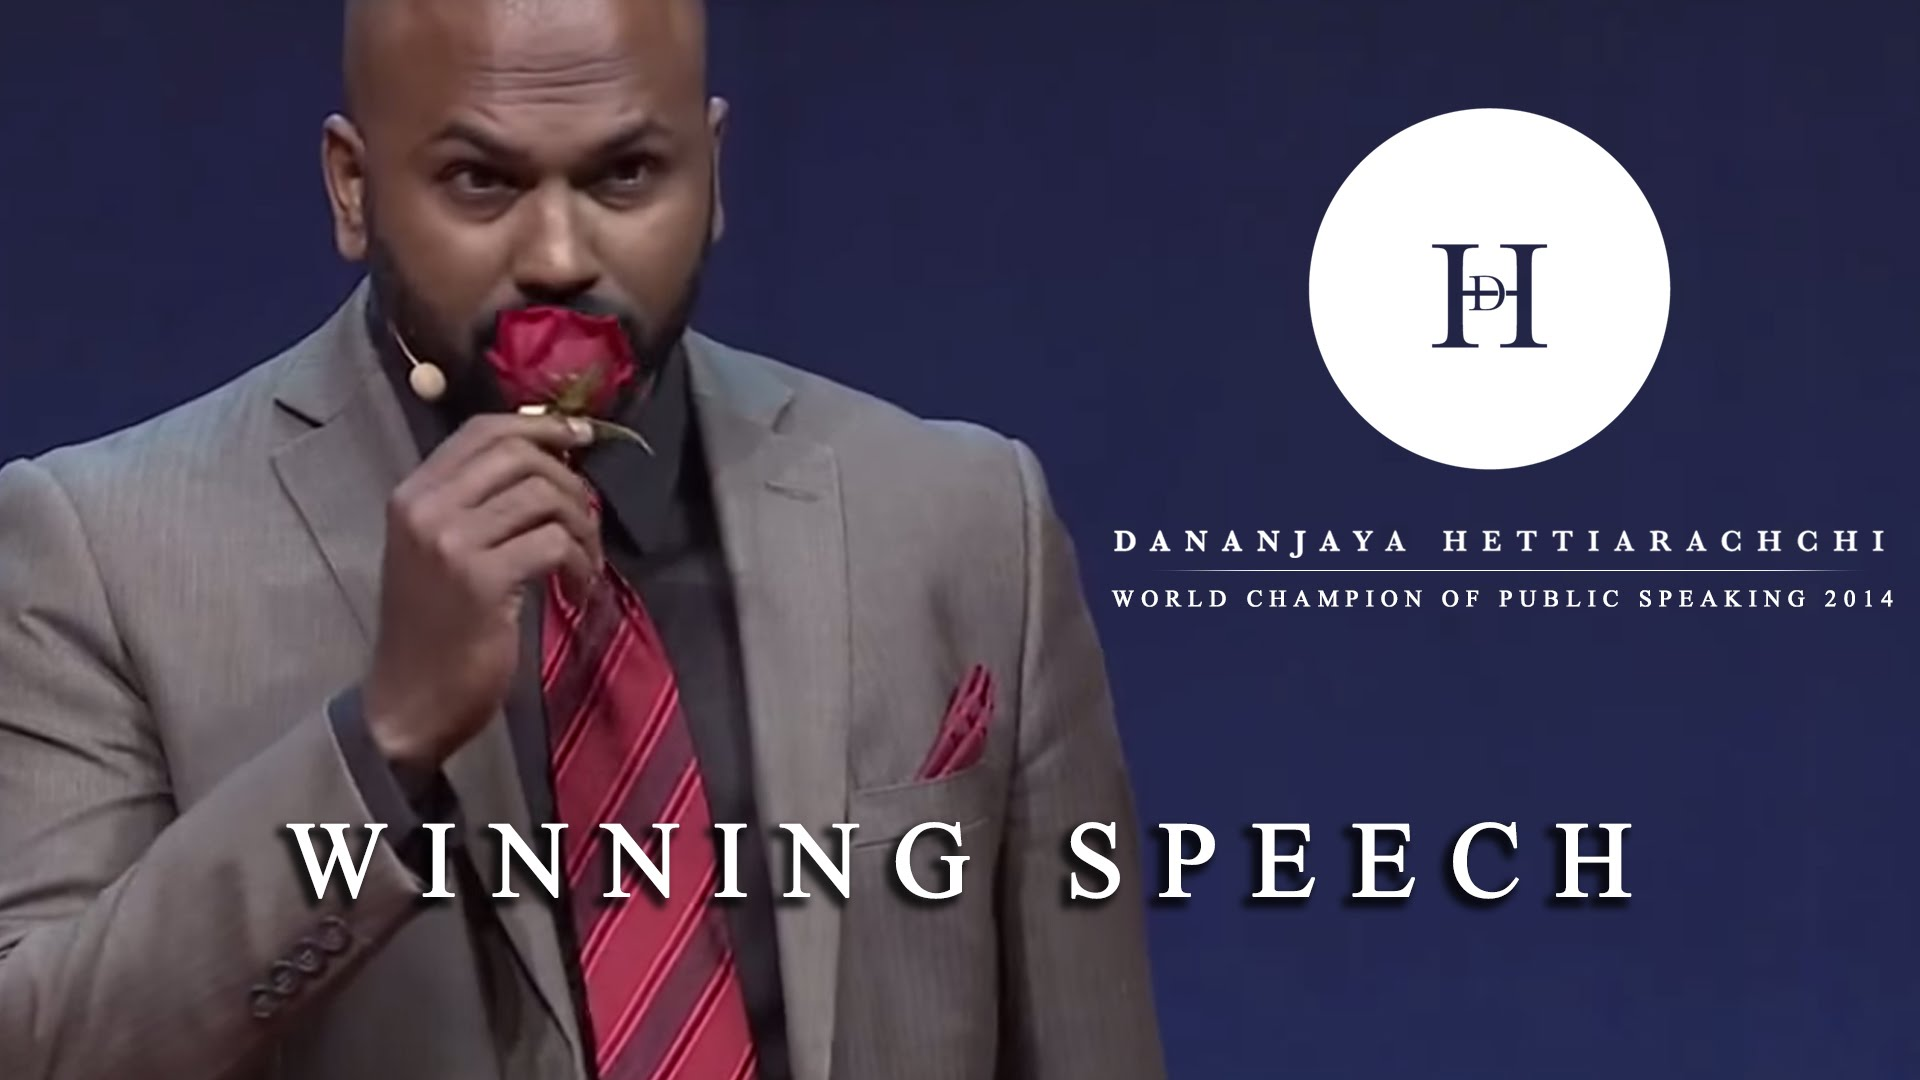 2014 world champion speaker dananjaya hettiarachchi